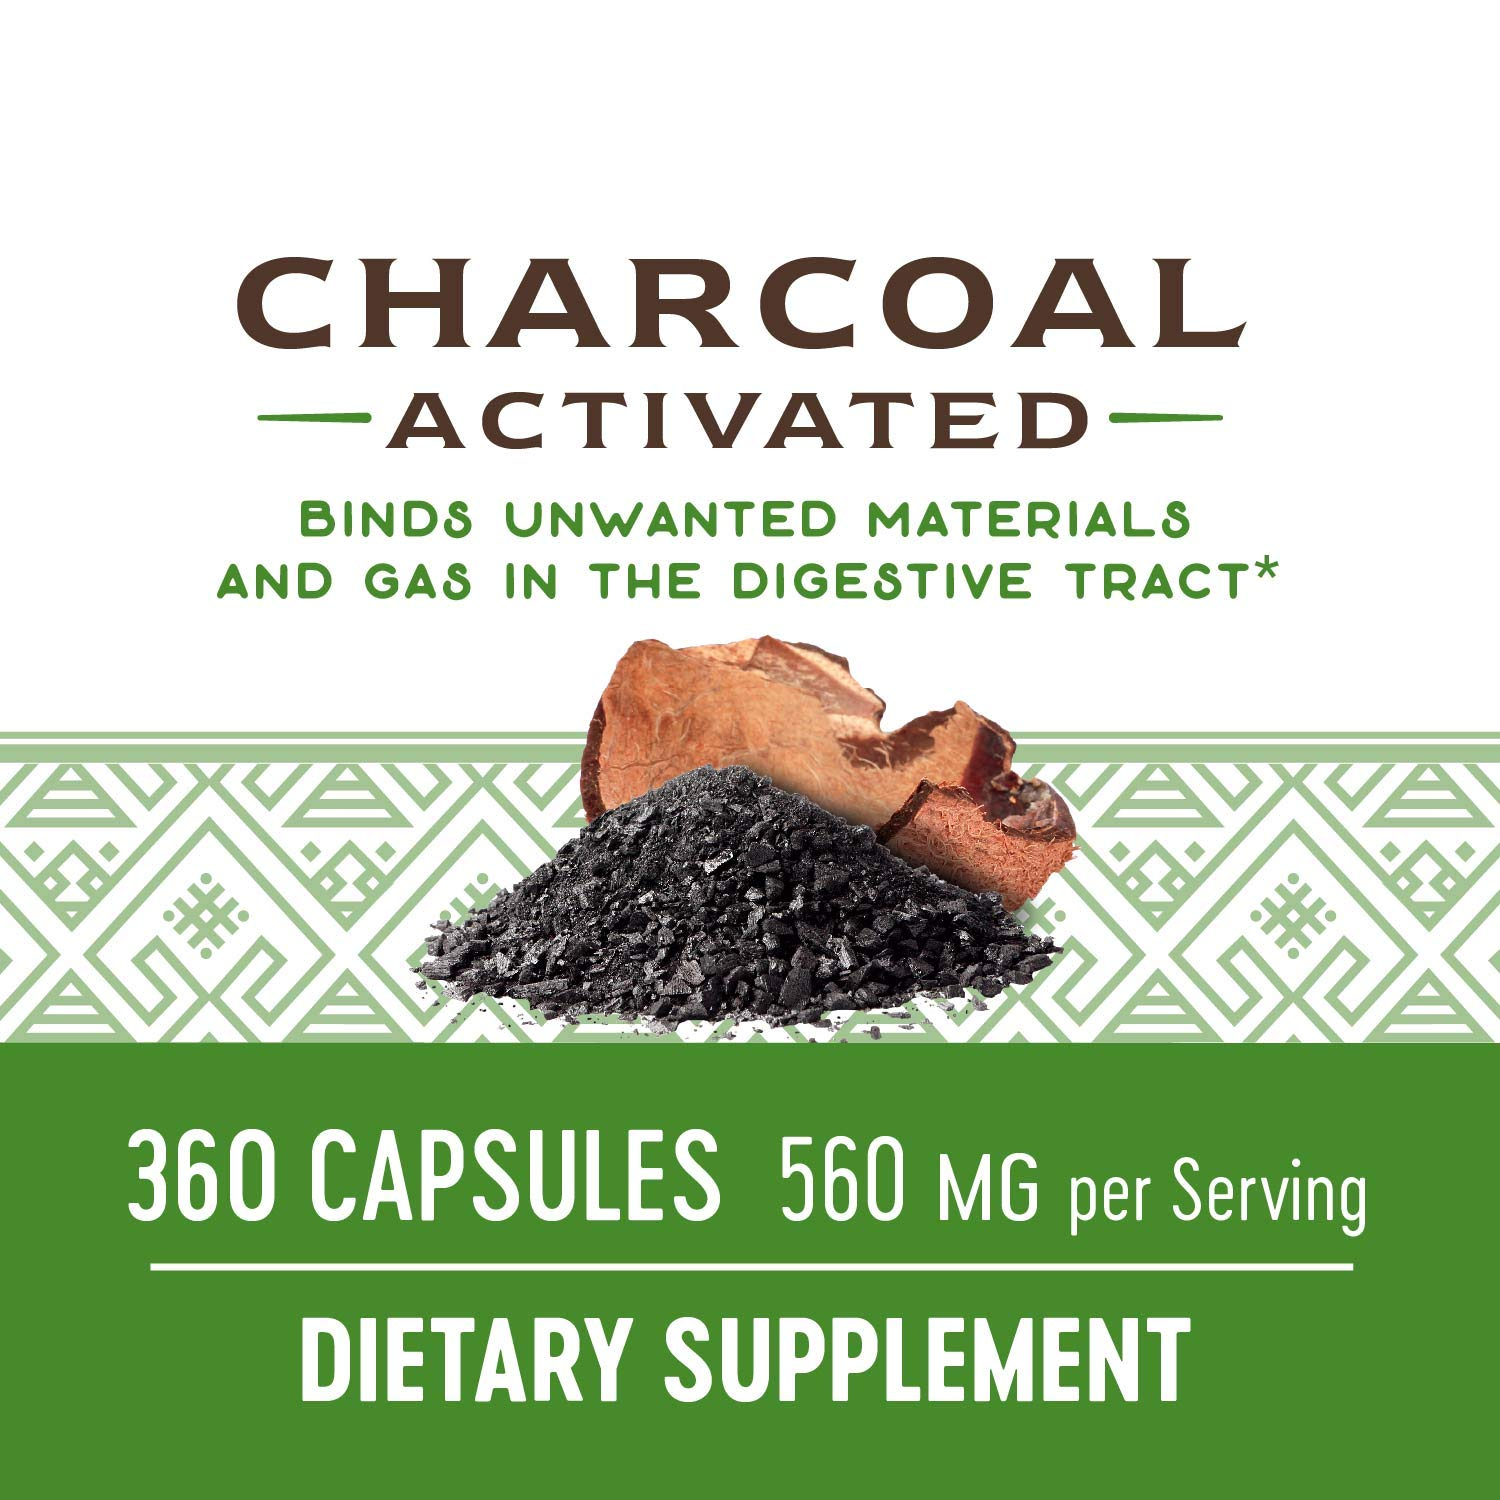 Nature's Way Charcoal Activated; 560 mg Charcoal per serving; 360 Capsules (Packaging May Vary) by Nature's Way (Image #5)